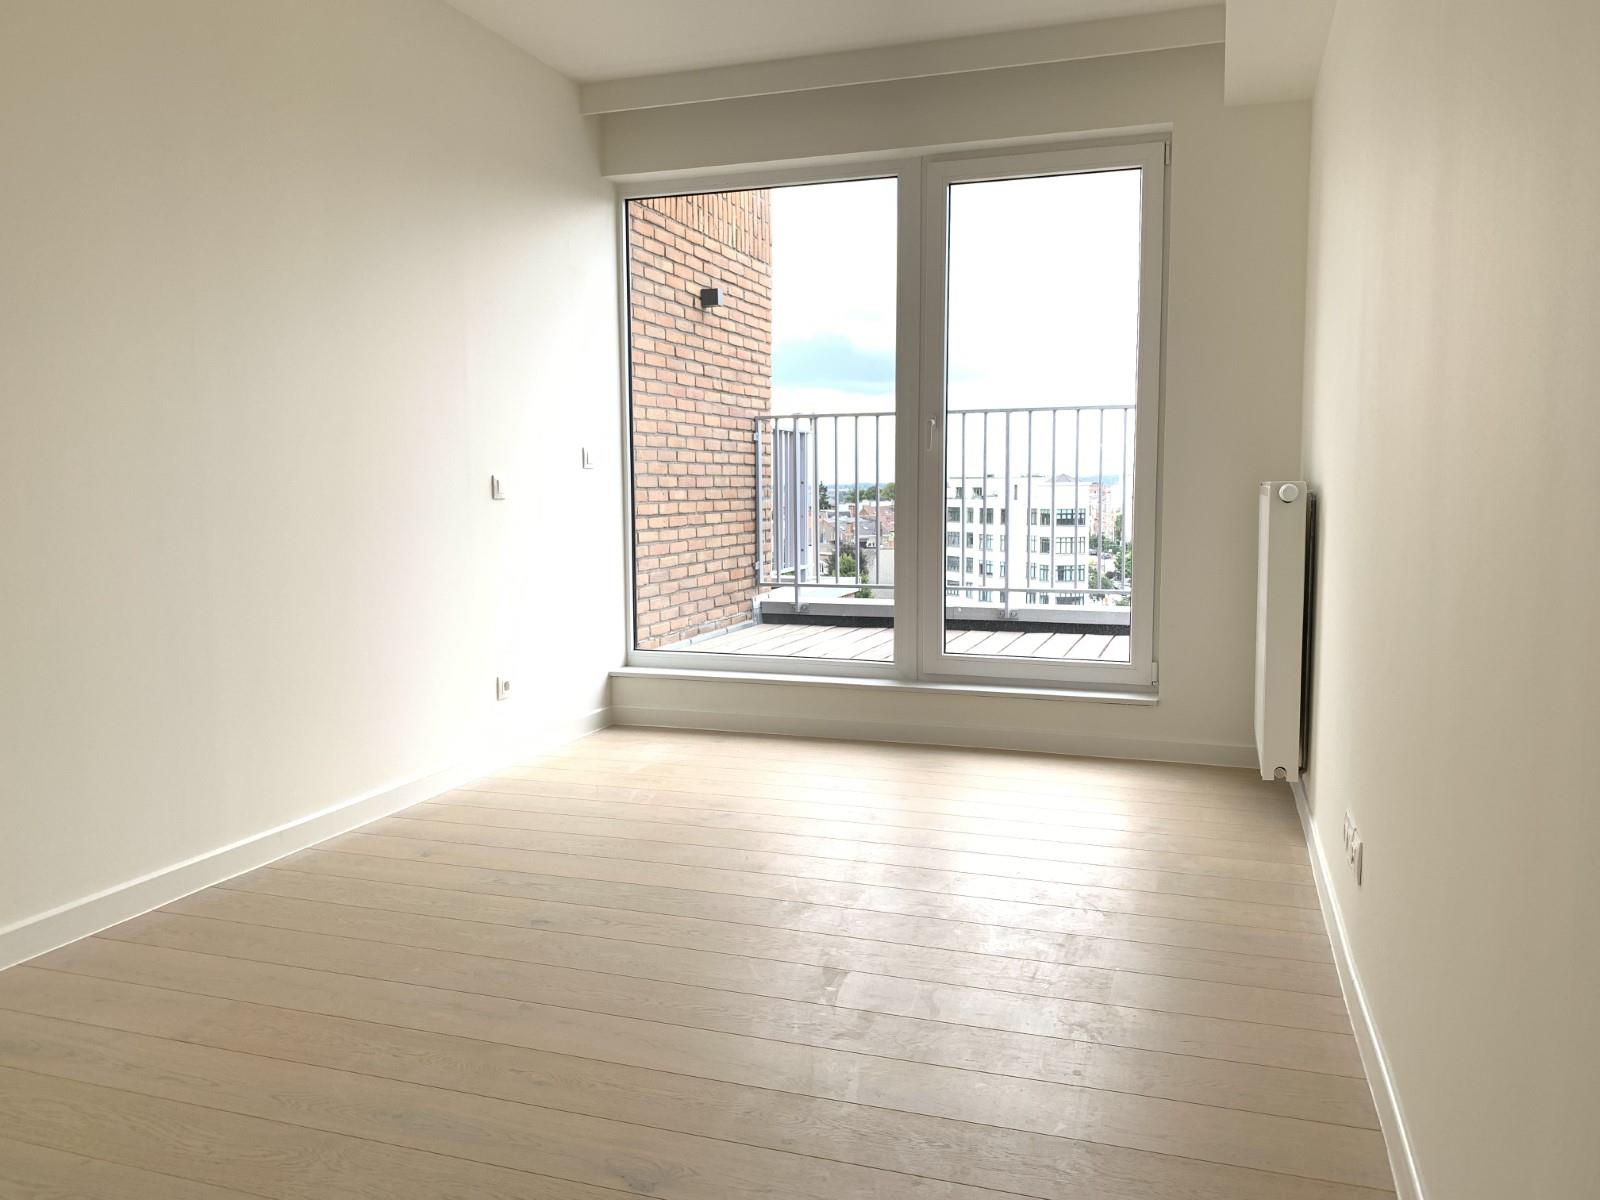 Appartement exceptionnel - Schaerbeek - #3875201-5